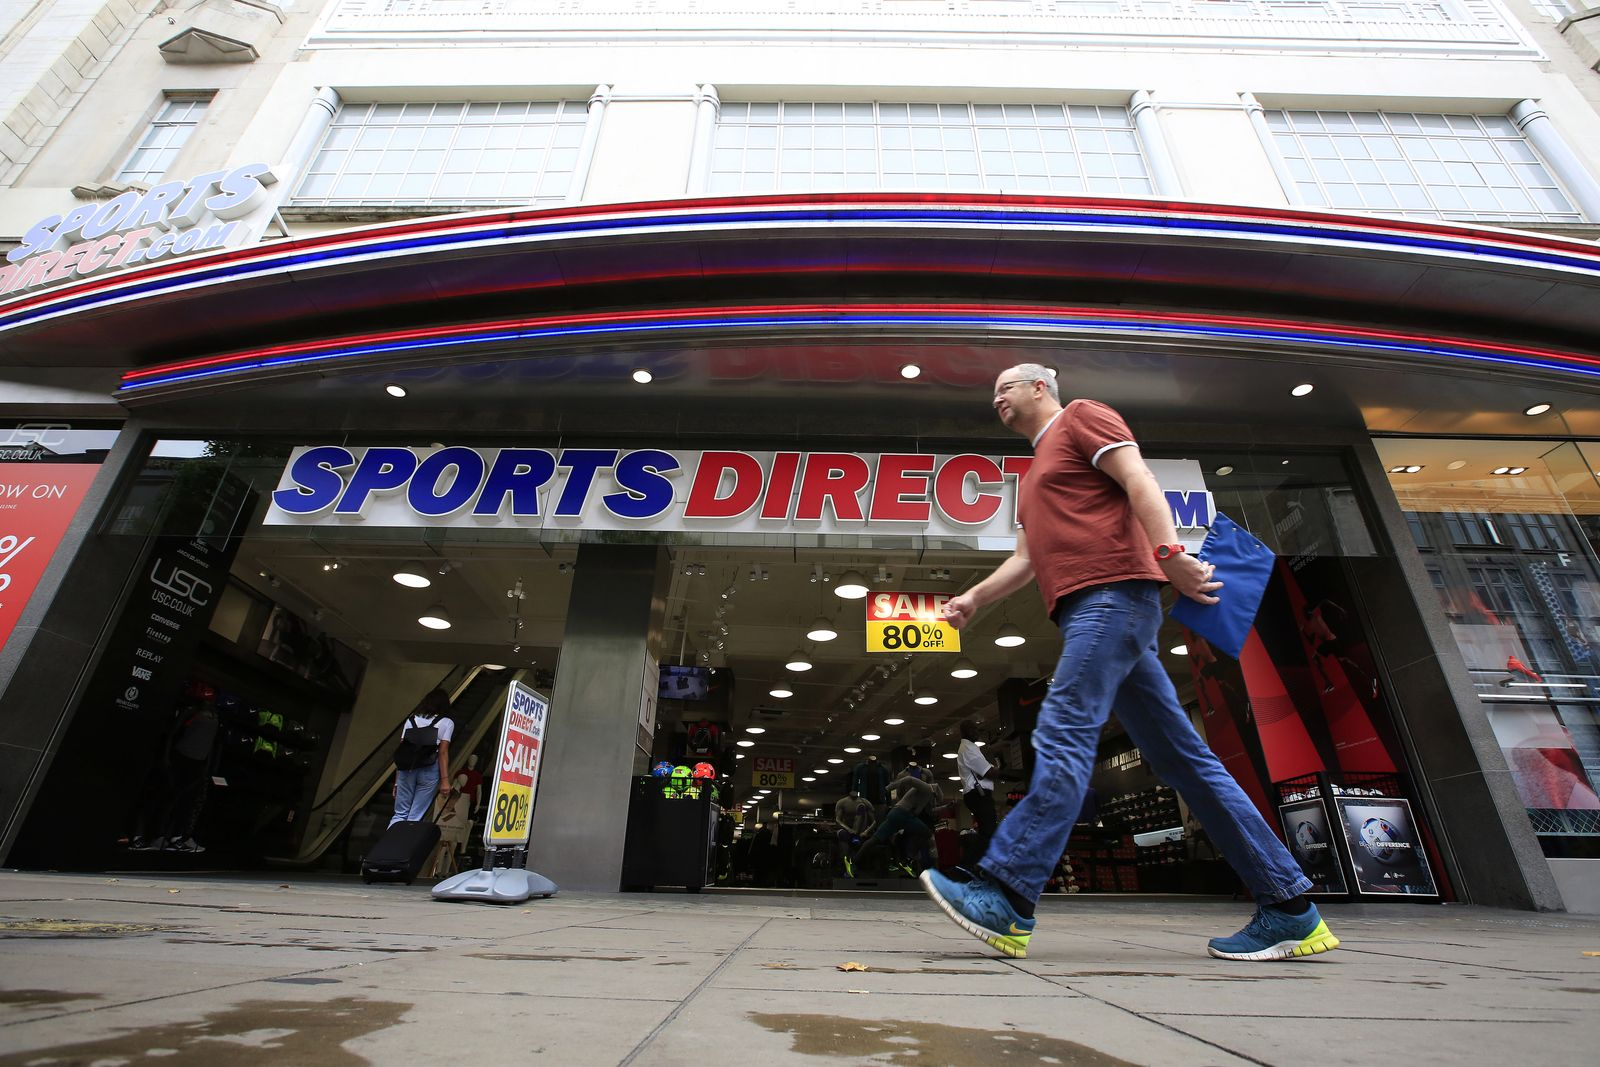 England Konjunktur SPORTS DIRECT